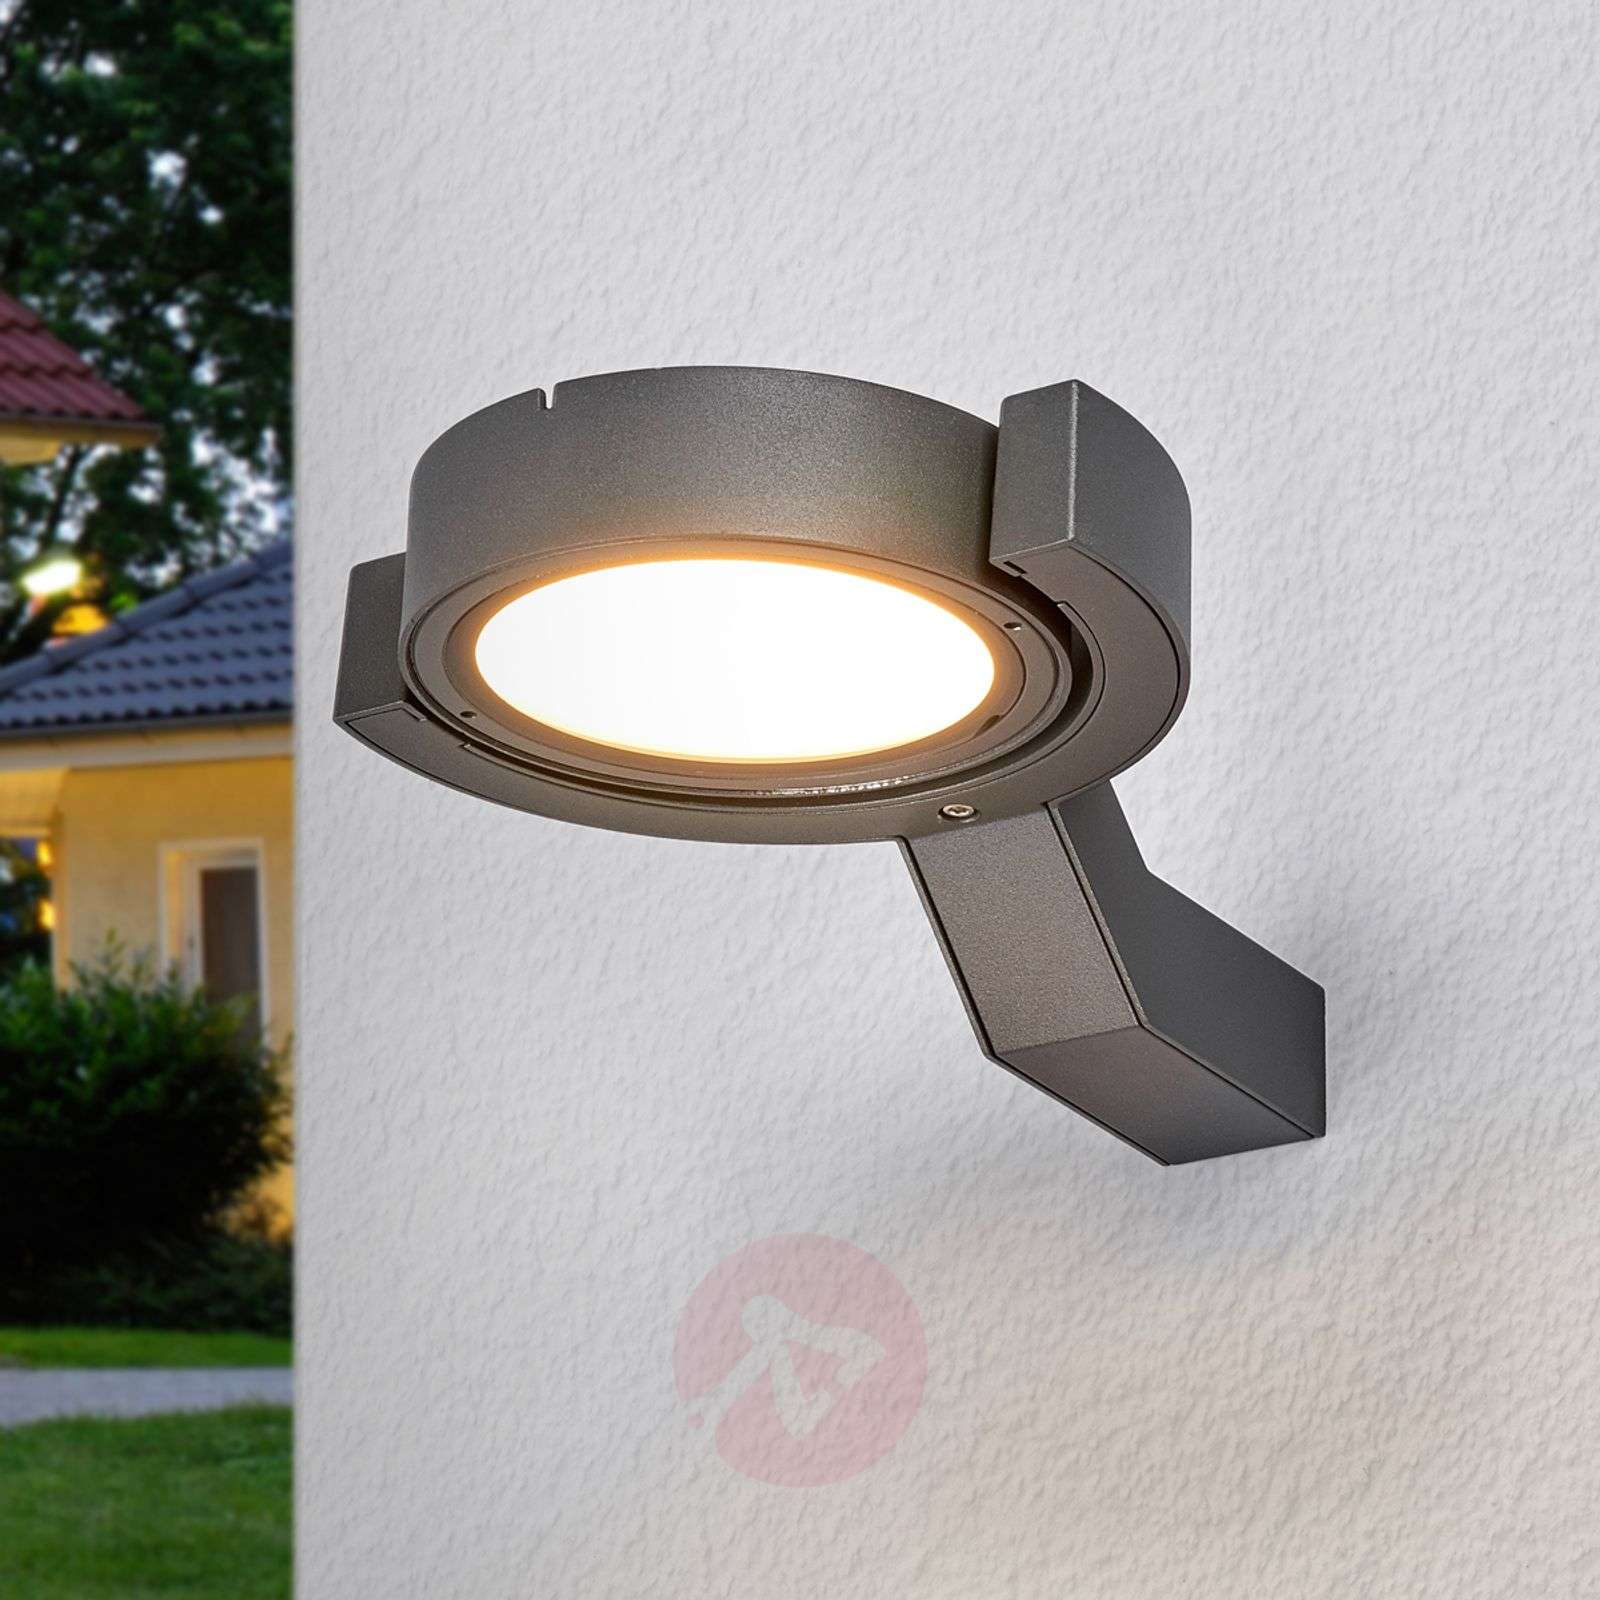 Isita adjustable led outdoor wall light for Eclairage a led exterieur